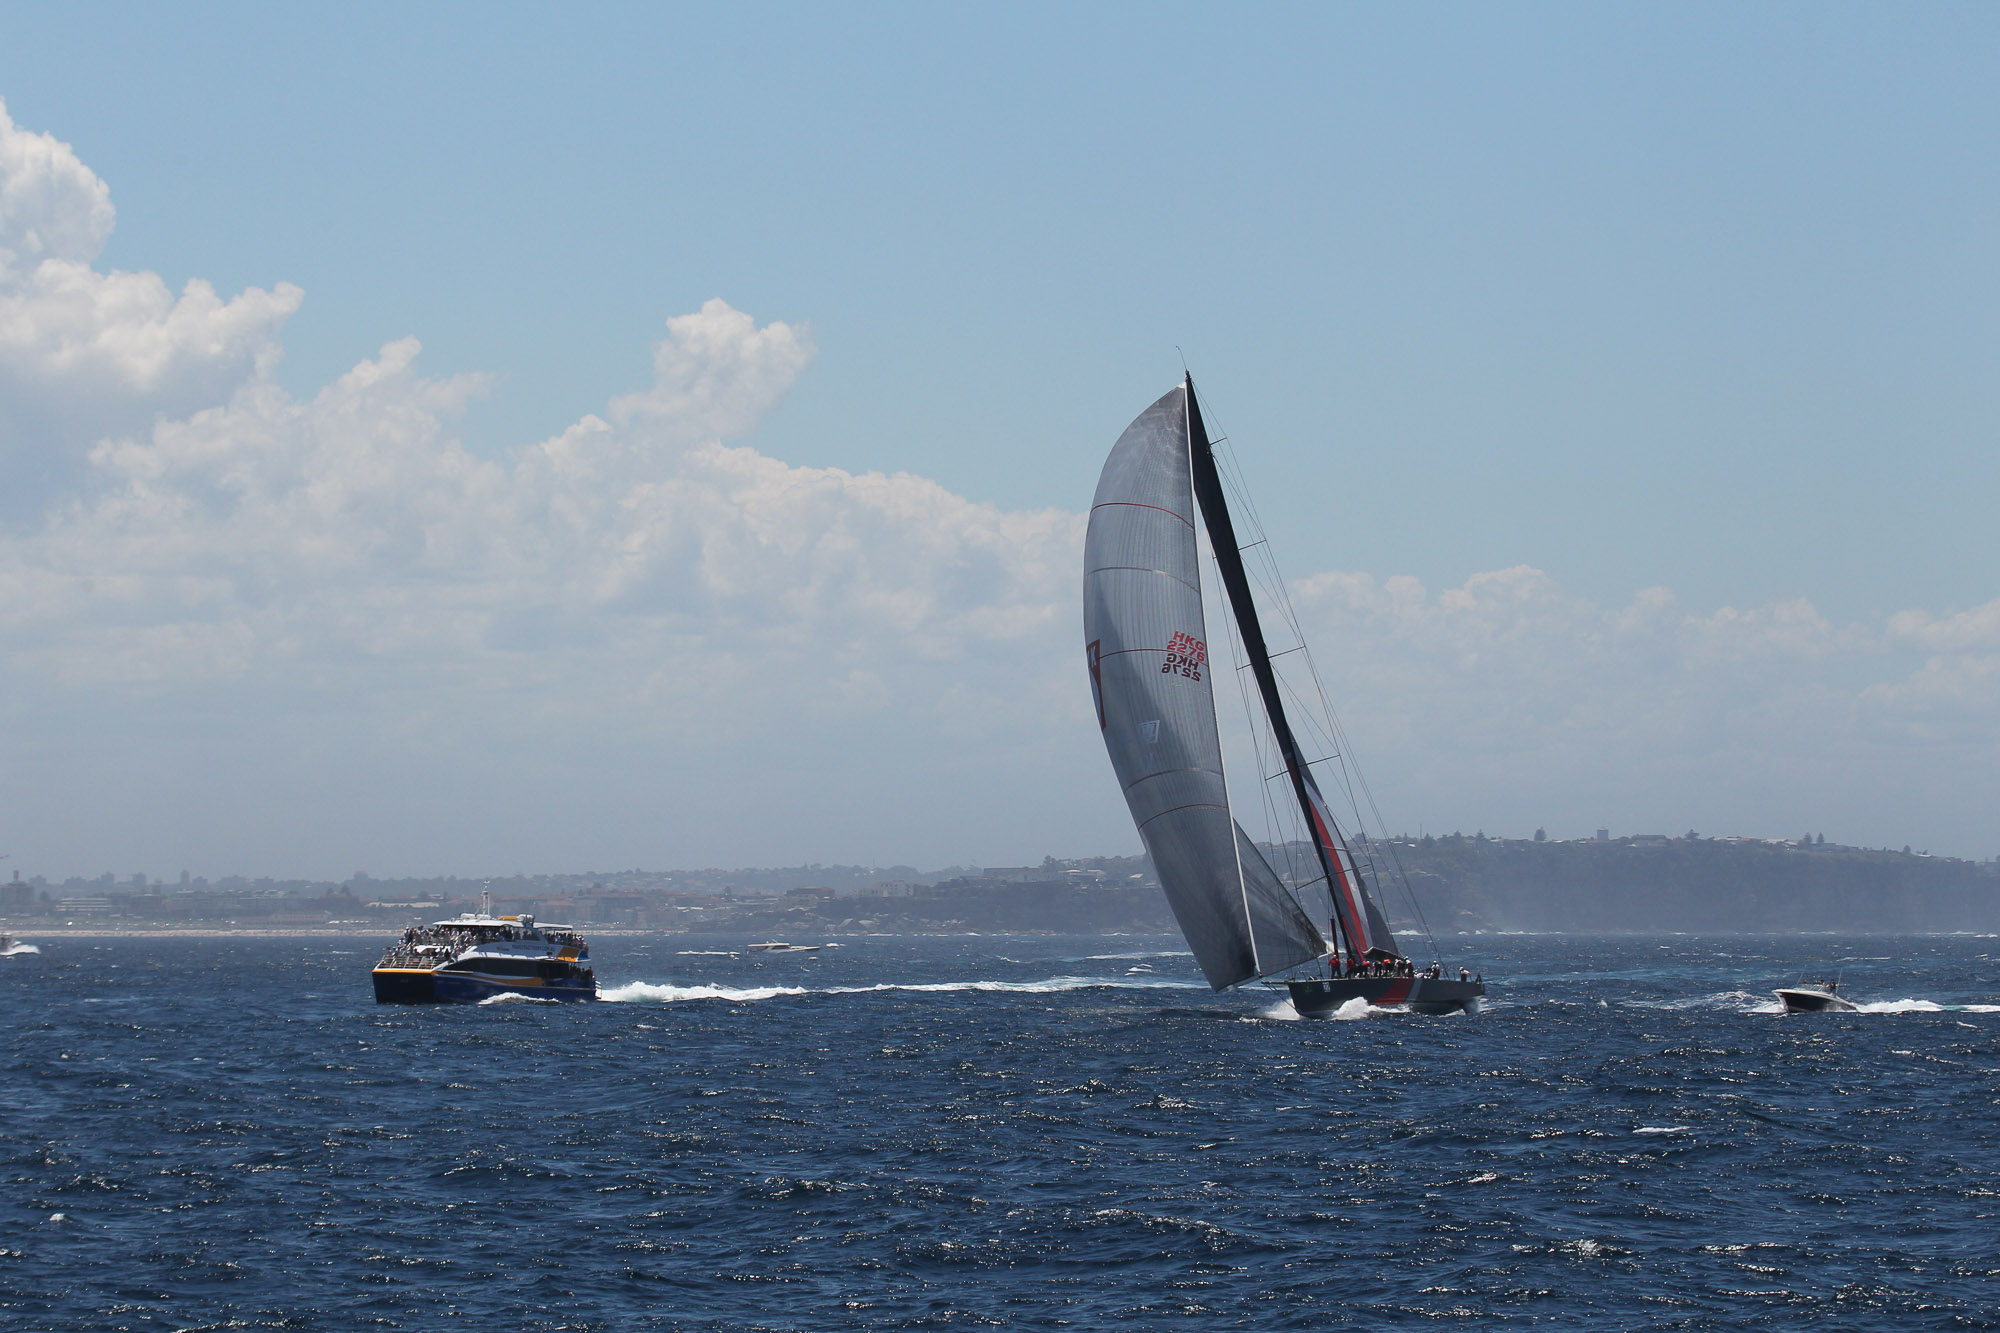 Open Ocean Cruise, Boxing Day, Yacht Race